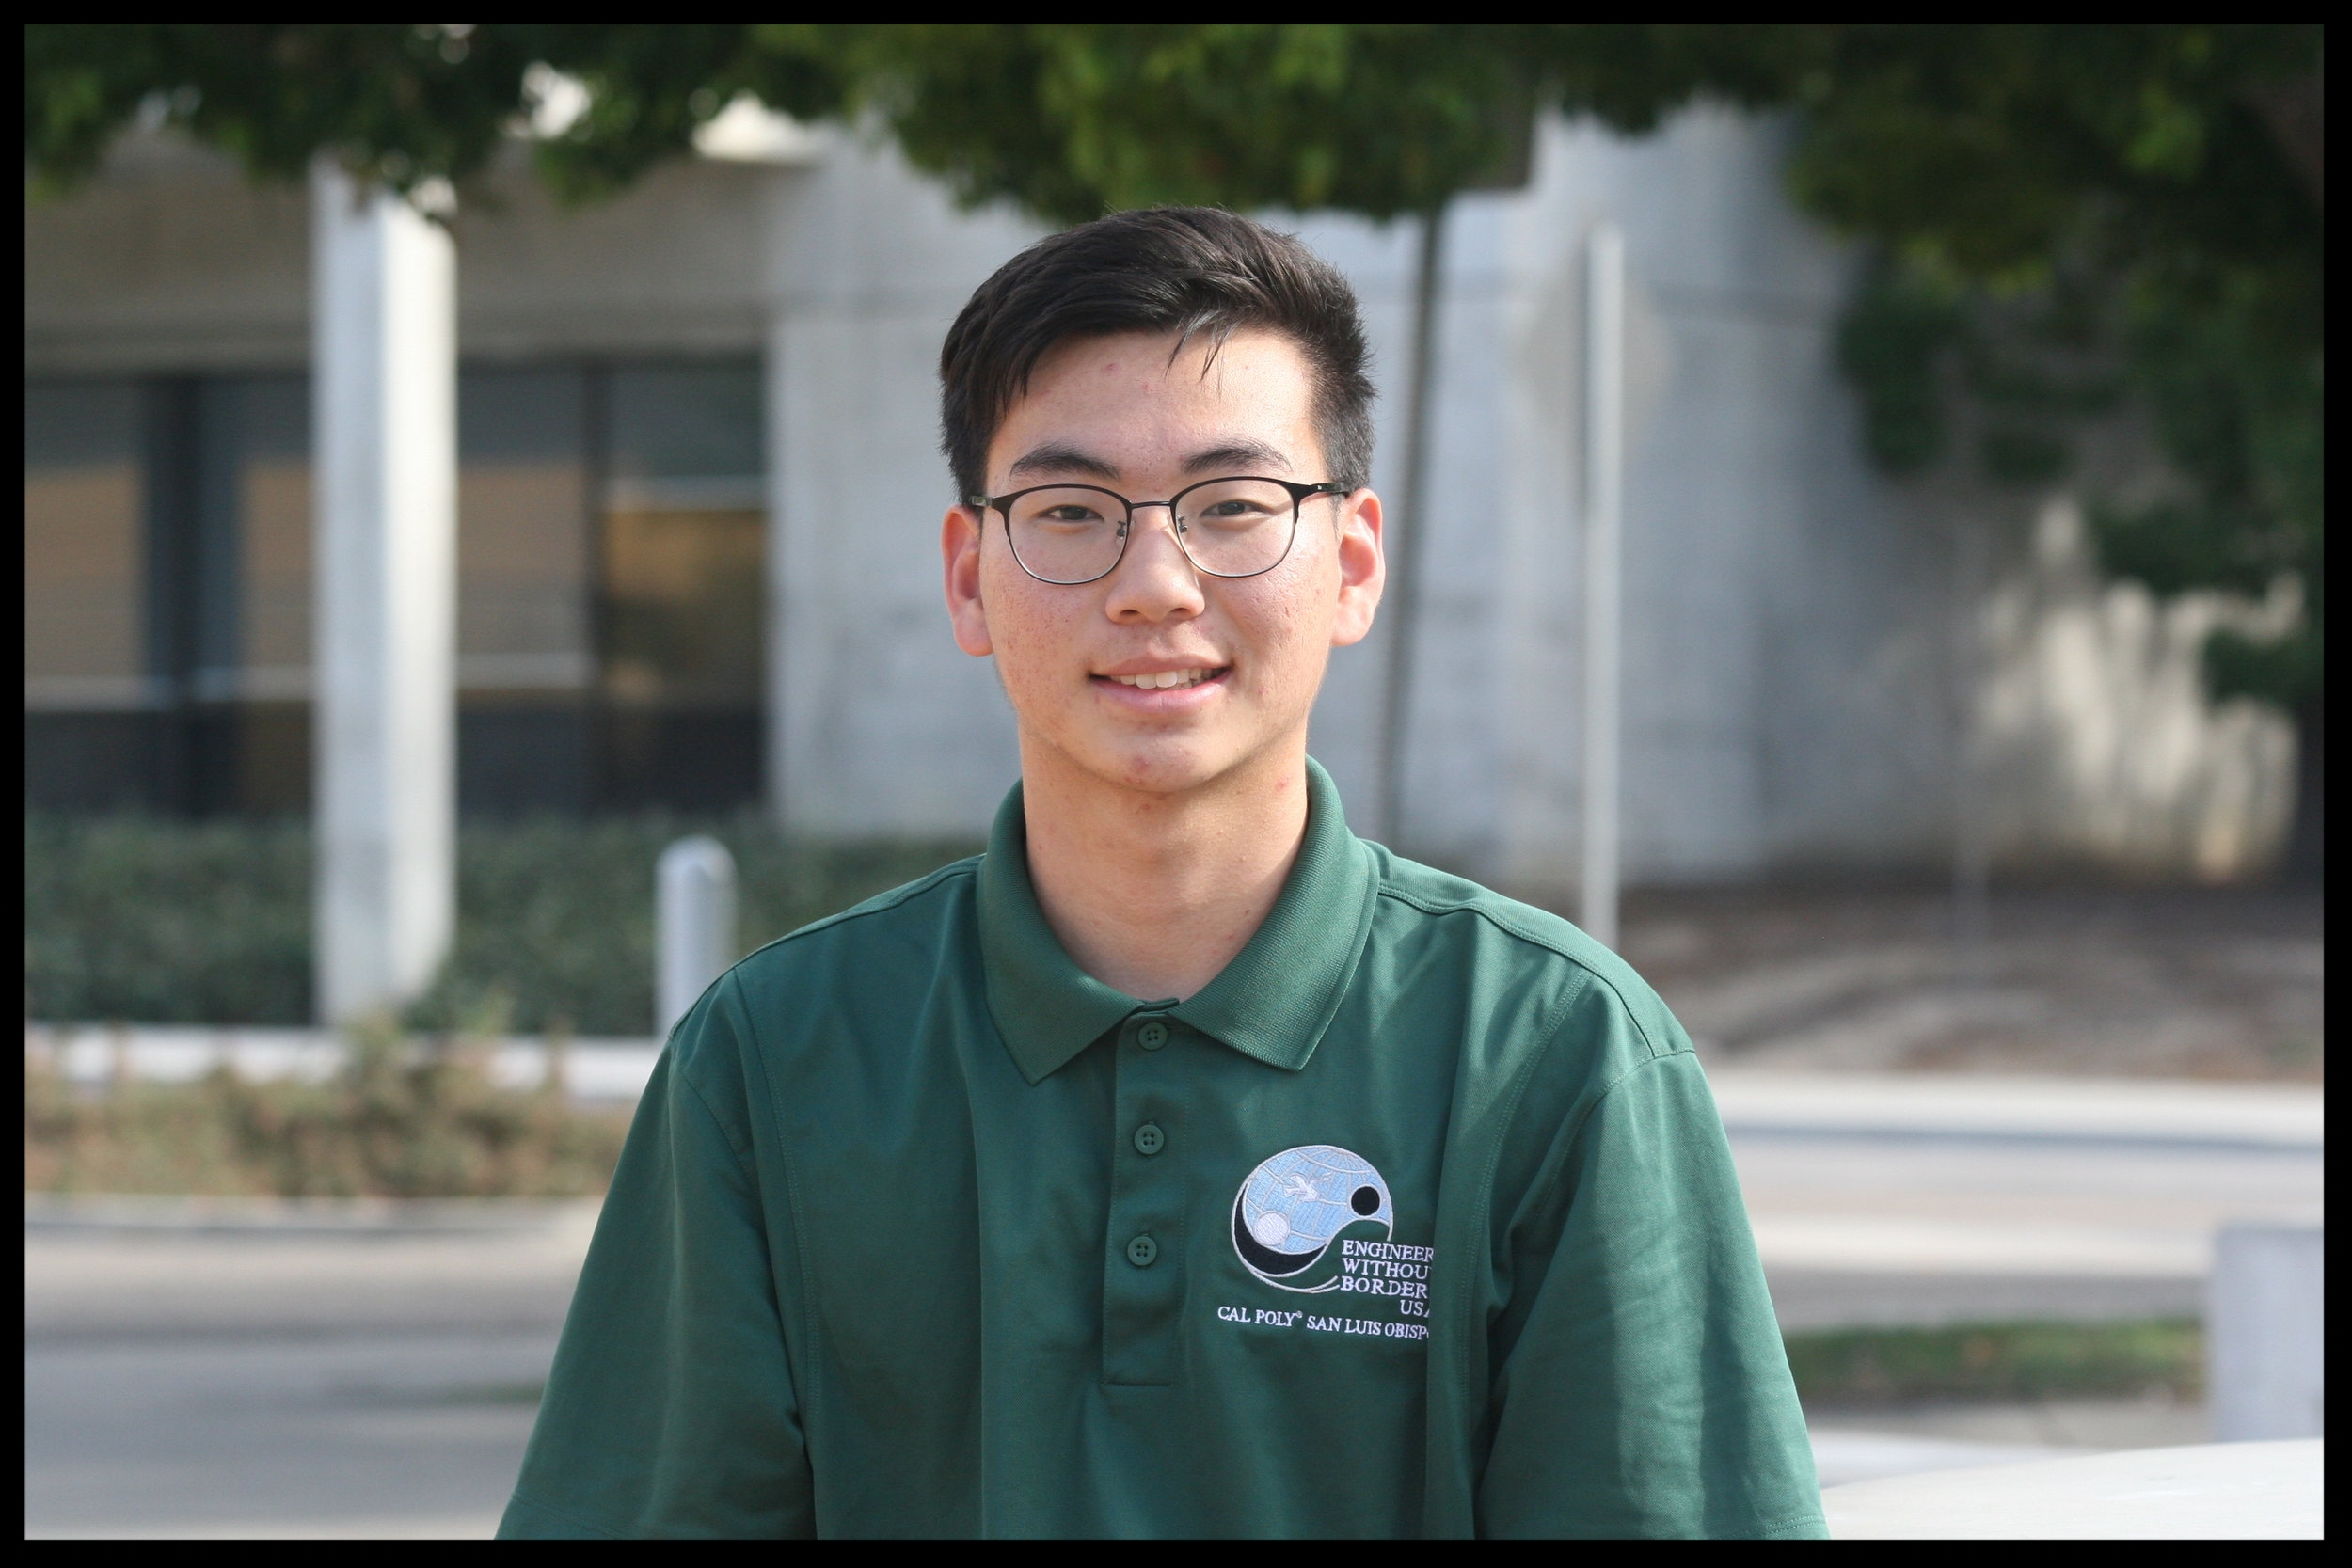 Dong Joon Kim - Local Projects Team Project Manager    Grad 2020 - Civil Engineering   DJ's hometown is Aliso Viejo, California. He originally joined EWB to play Ultimate Frisbee, but quickly fell in love with sustainable development as well as the impact we can have on local and international communities. One of his favorite things is to meet and work with people that are interested in getting involved with sustainability. His other passions include music production and watching excessive amounts of soccer.